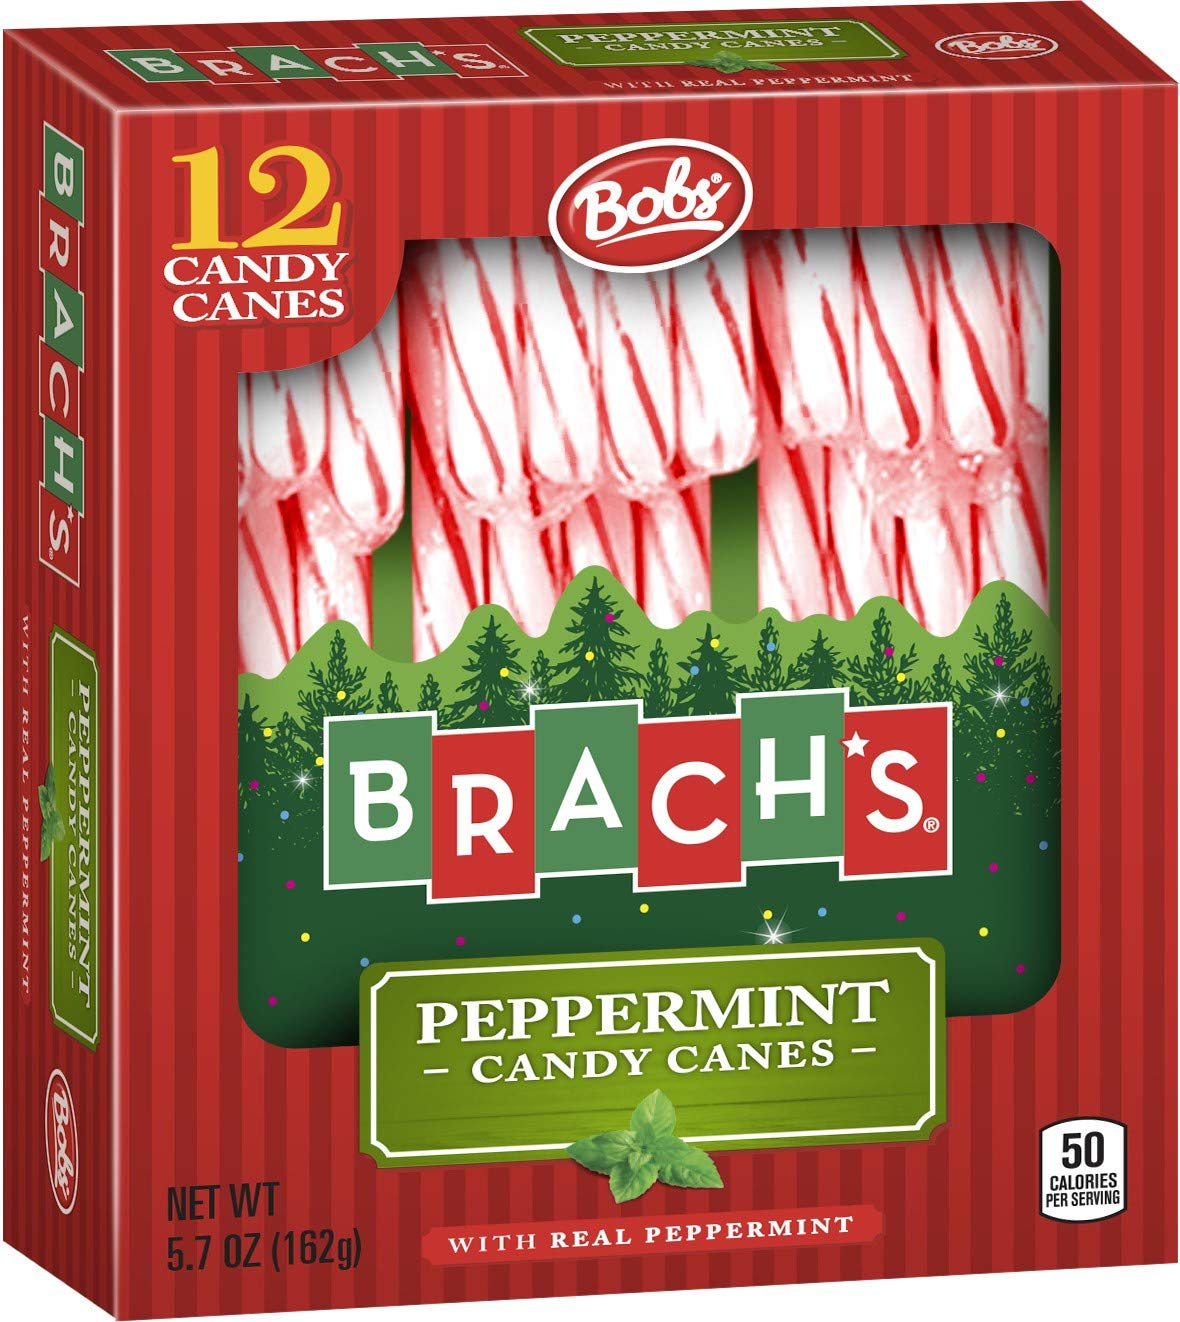 Brach's Red and White Peppermint Candy Canes